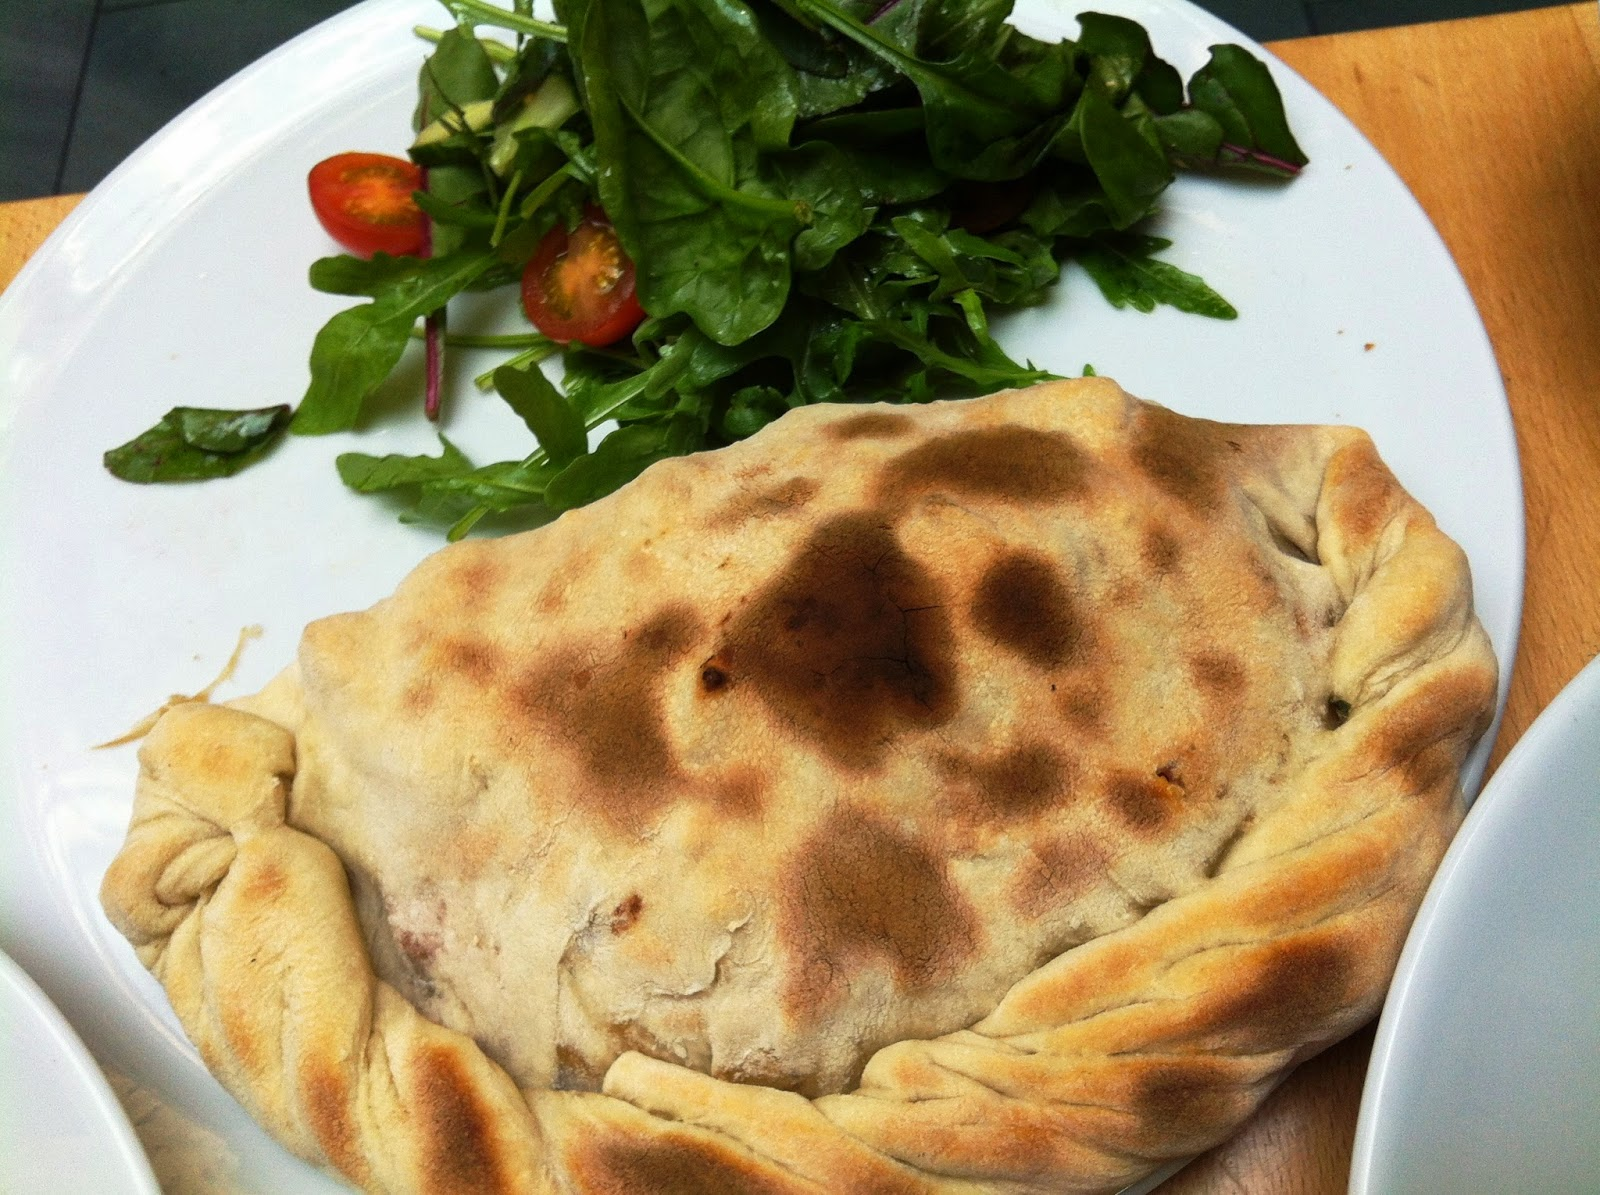 Salad and Calzone with Roast Vegetables, Tapenade, and Fresh Basil